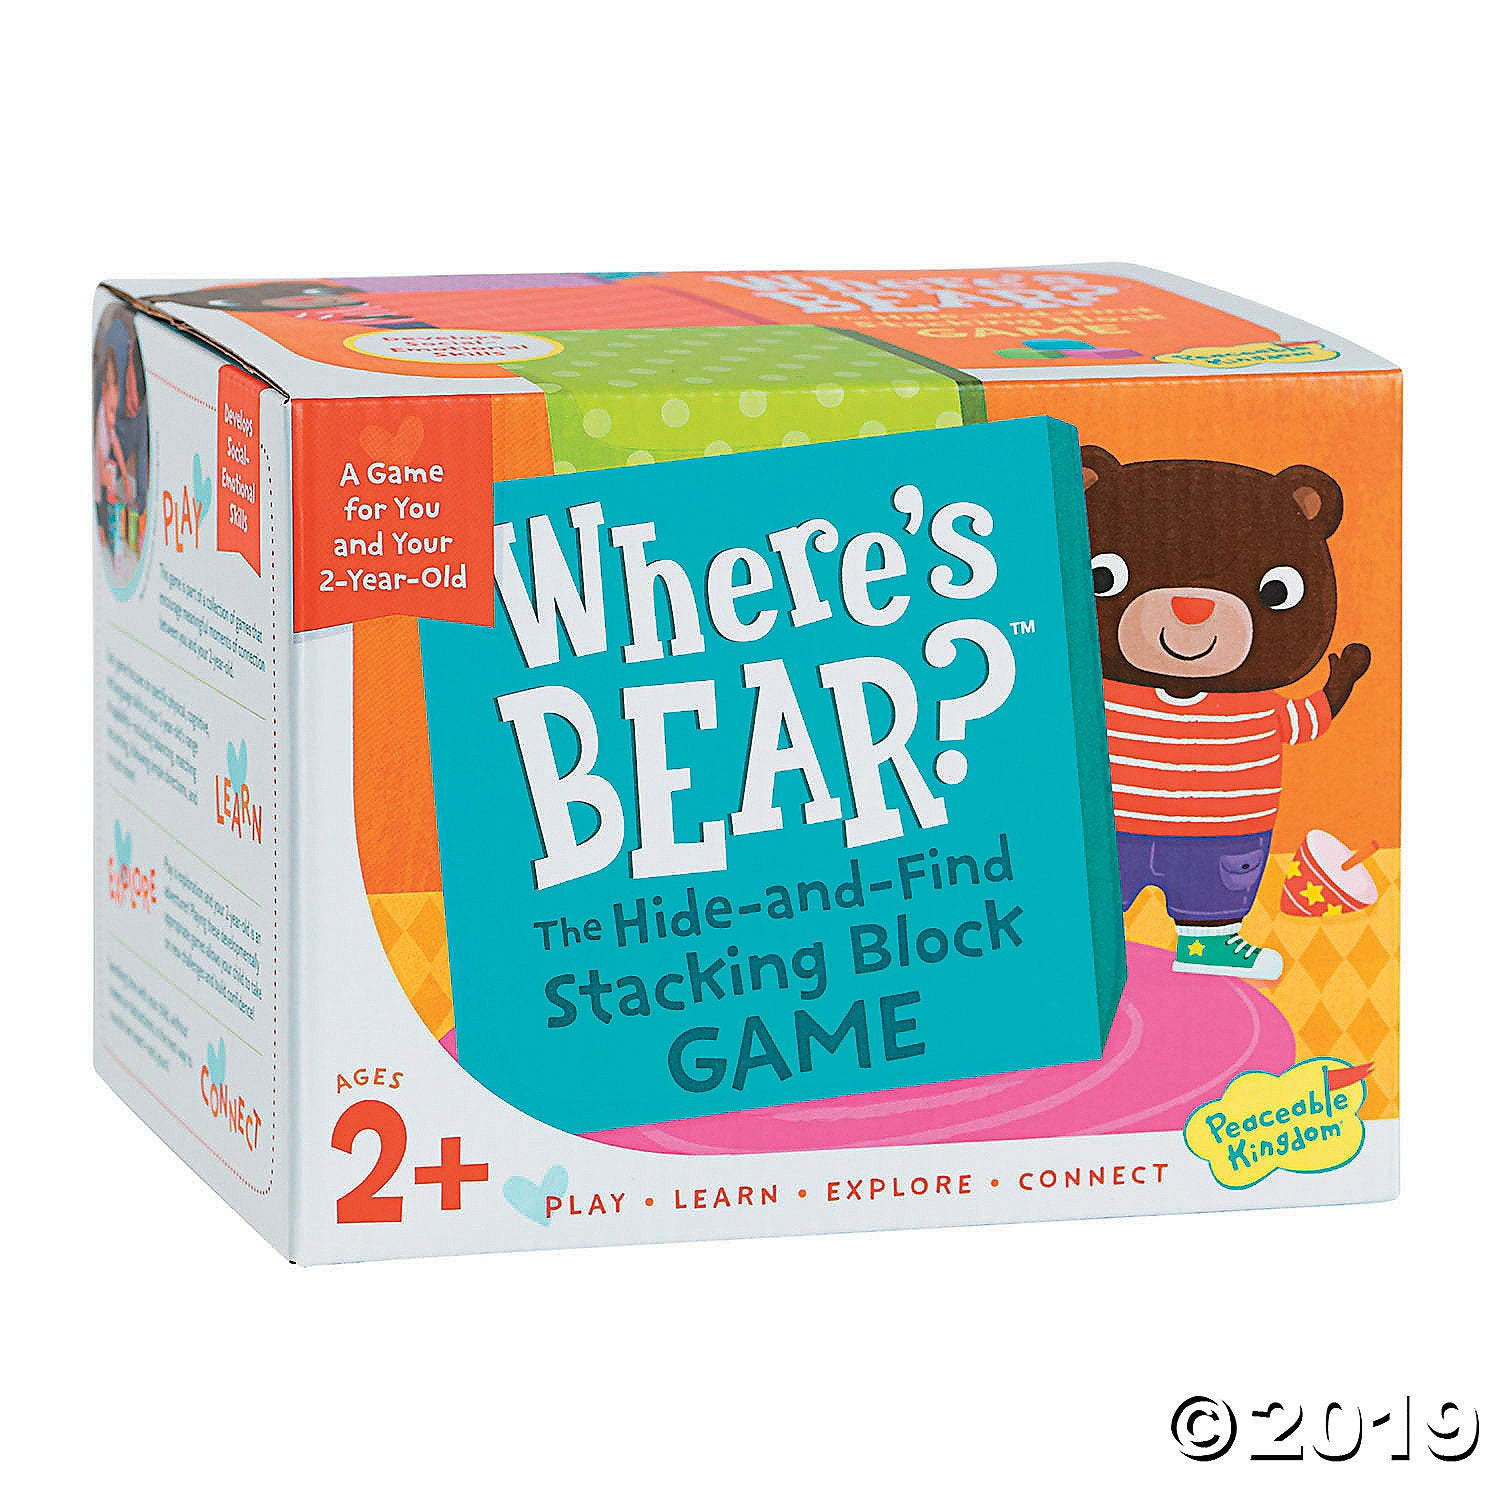 Where's Bear? The Hide-and-Find Stacking Block Game